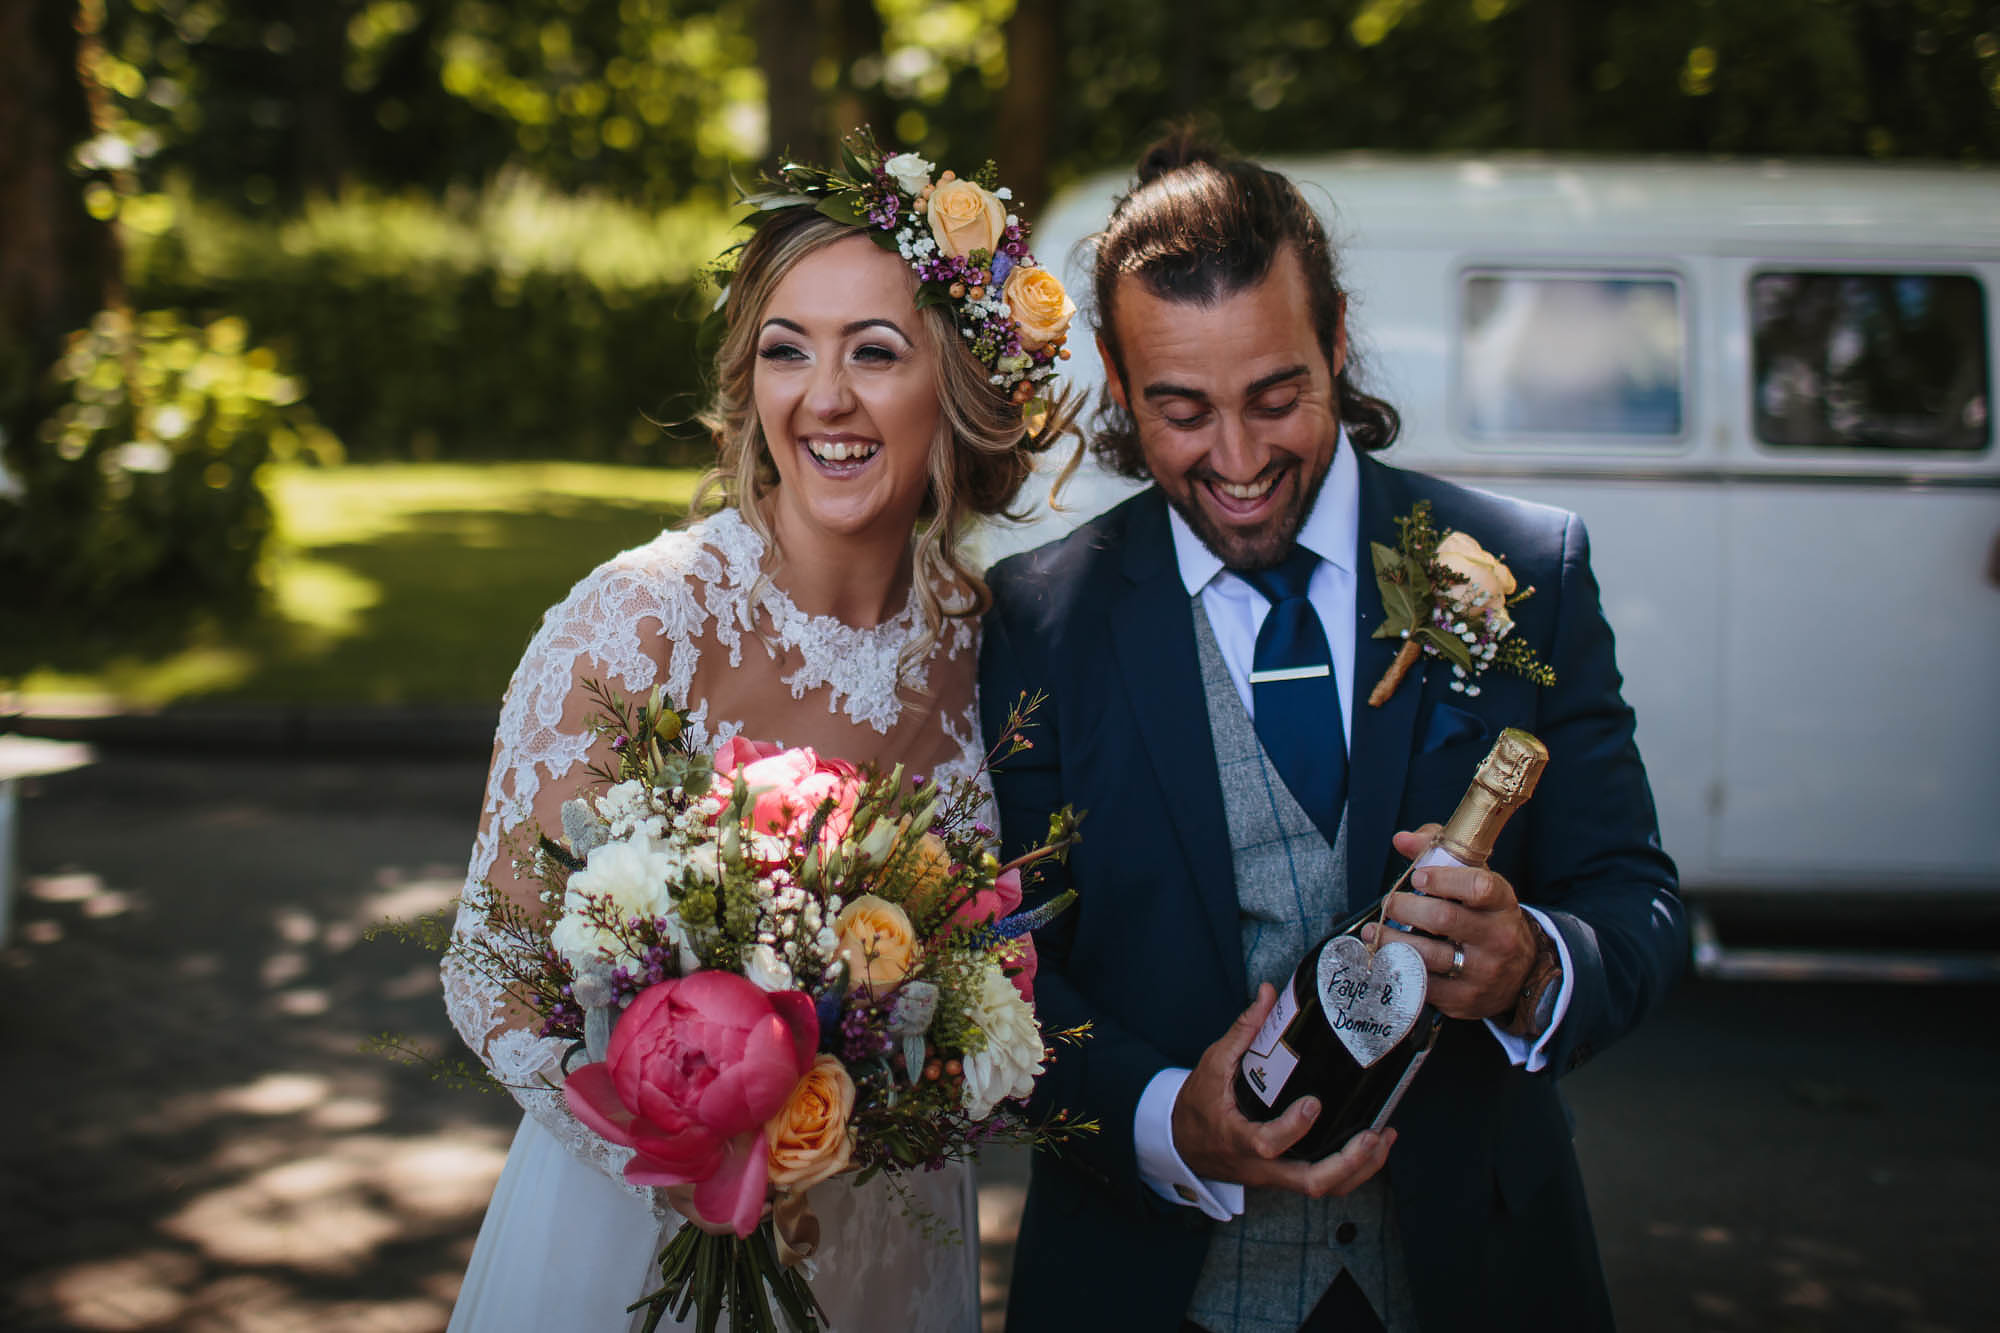 Bride and groom laughing as they hold a bottle of champagne at their wedding